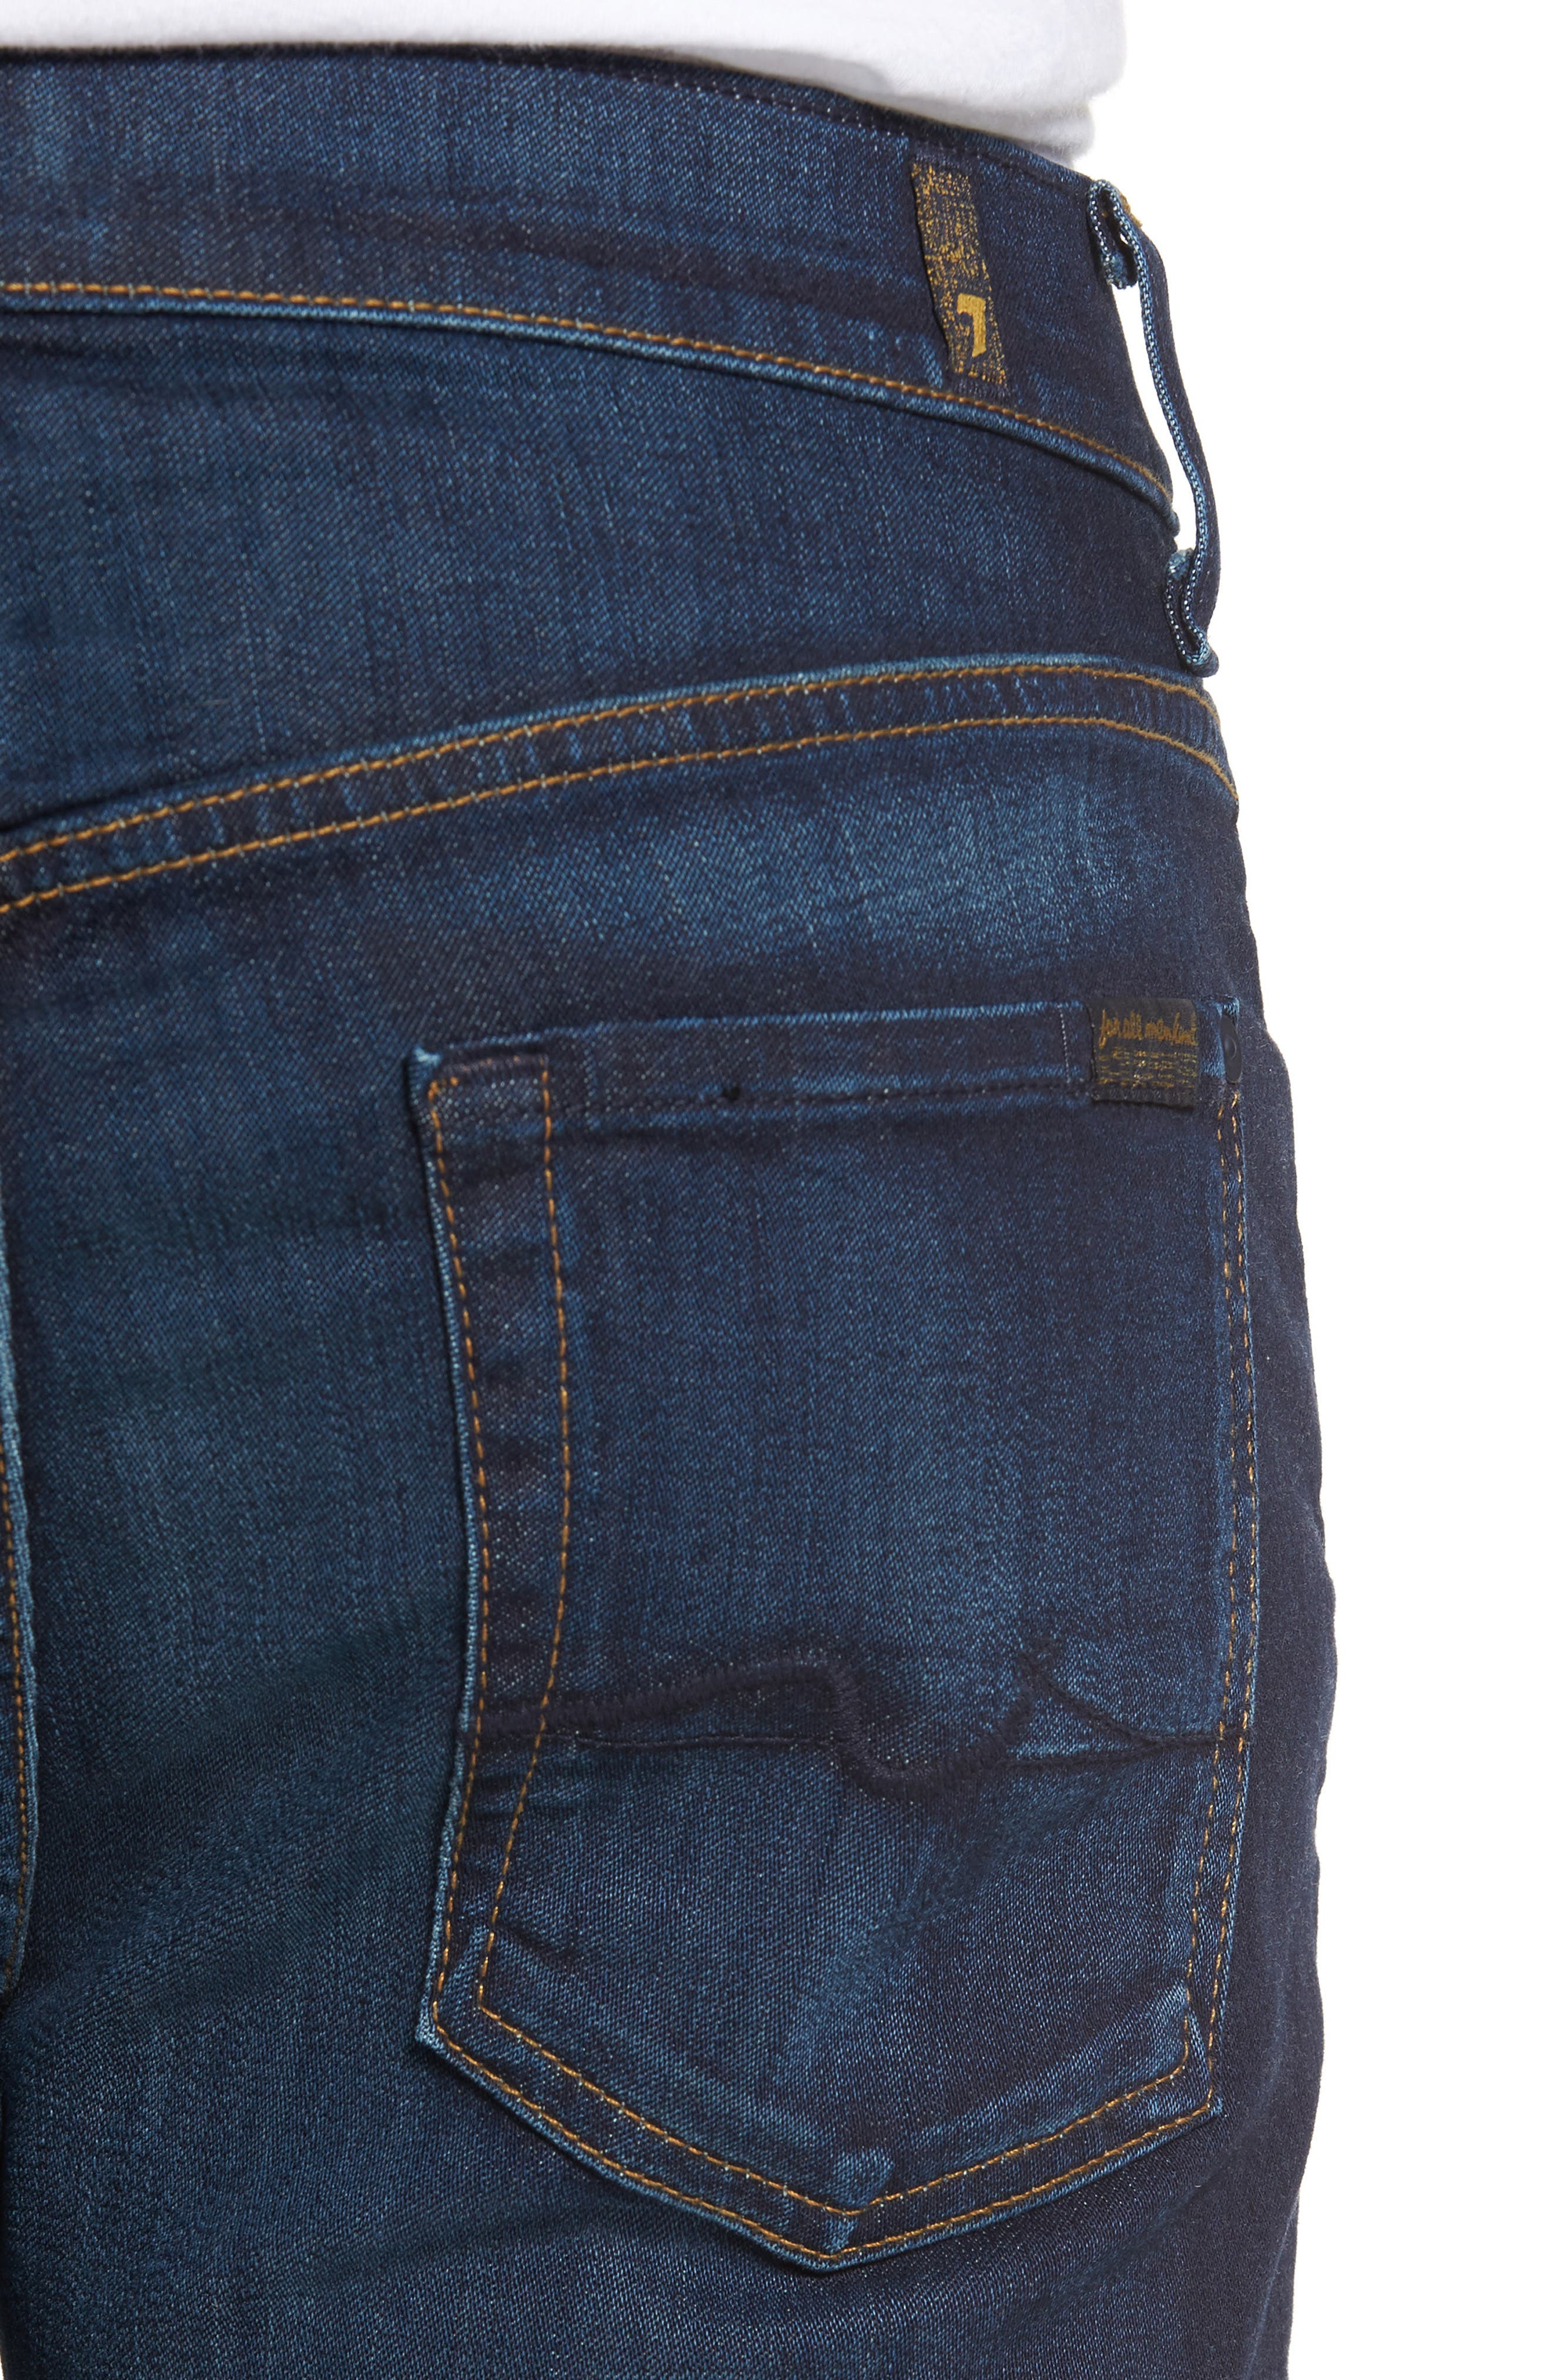 Luxe Performance Straight Leg Jeans,                             Alternate thumbnail 4, color,                             North Pacific